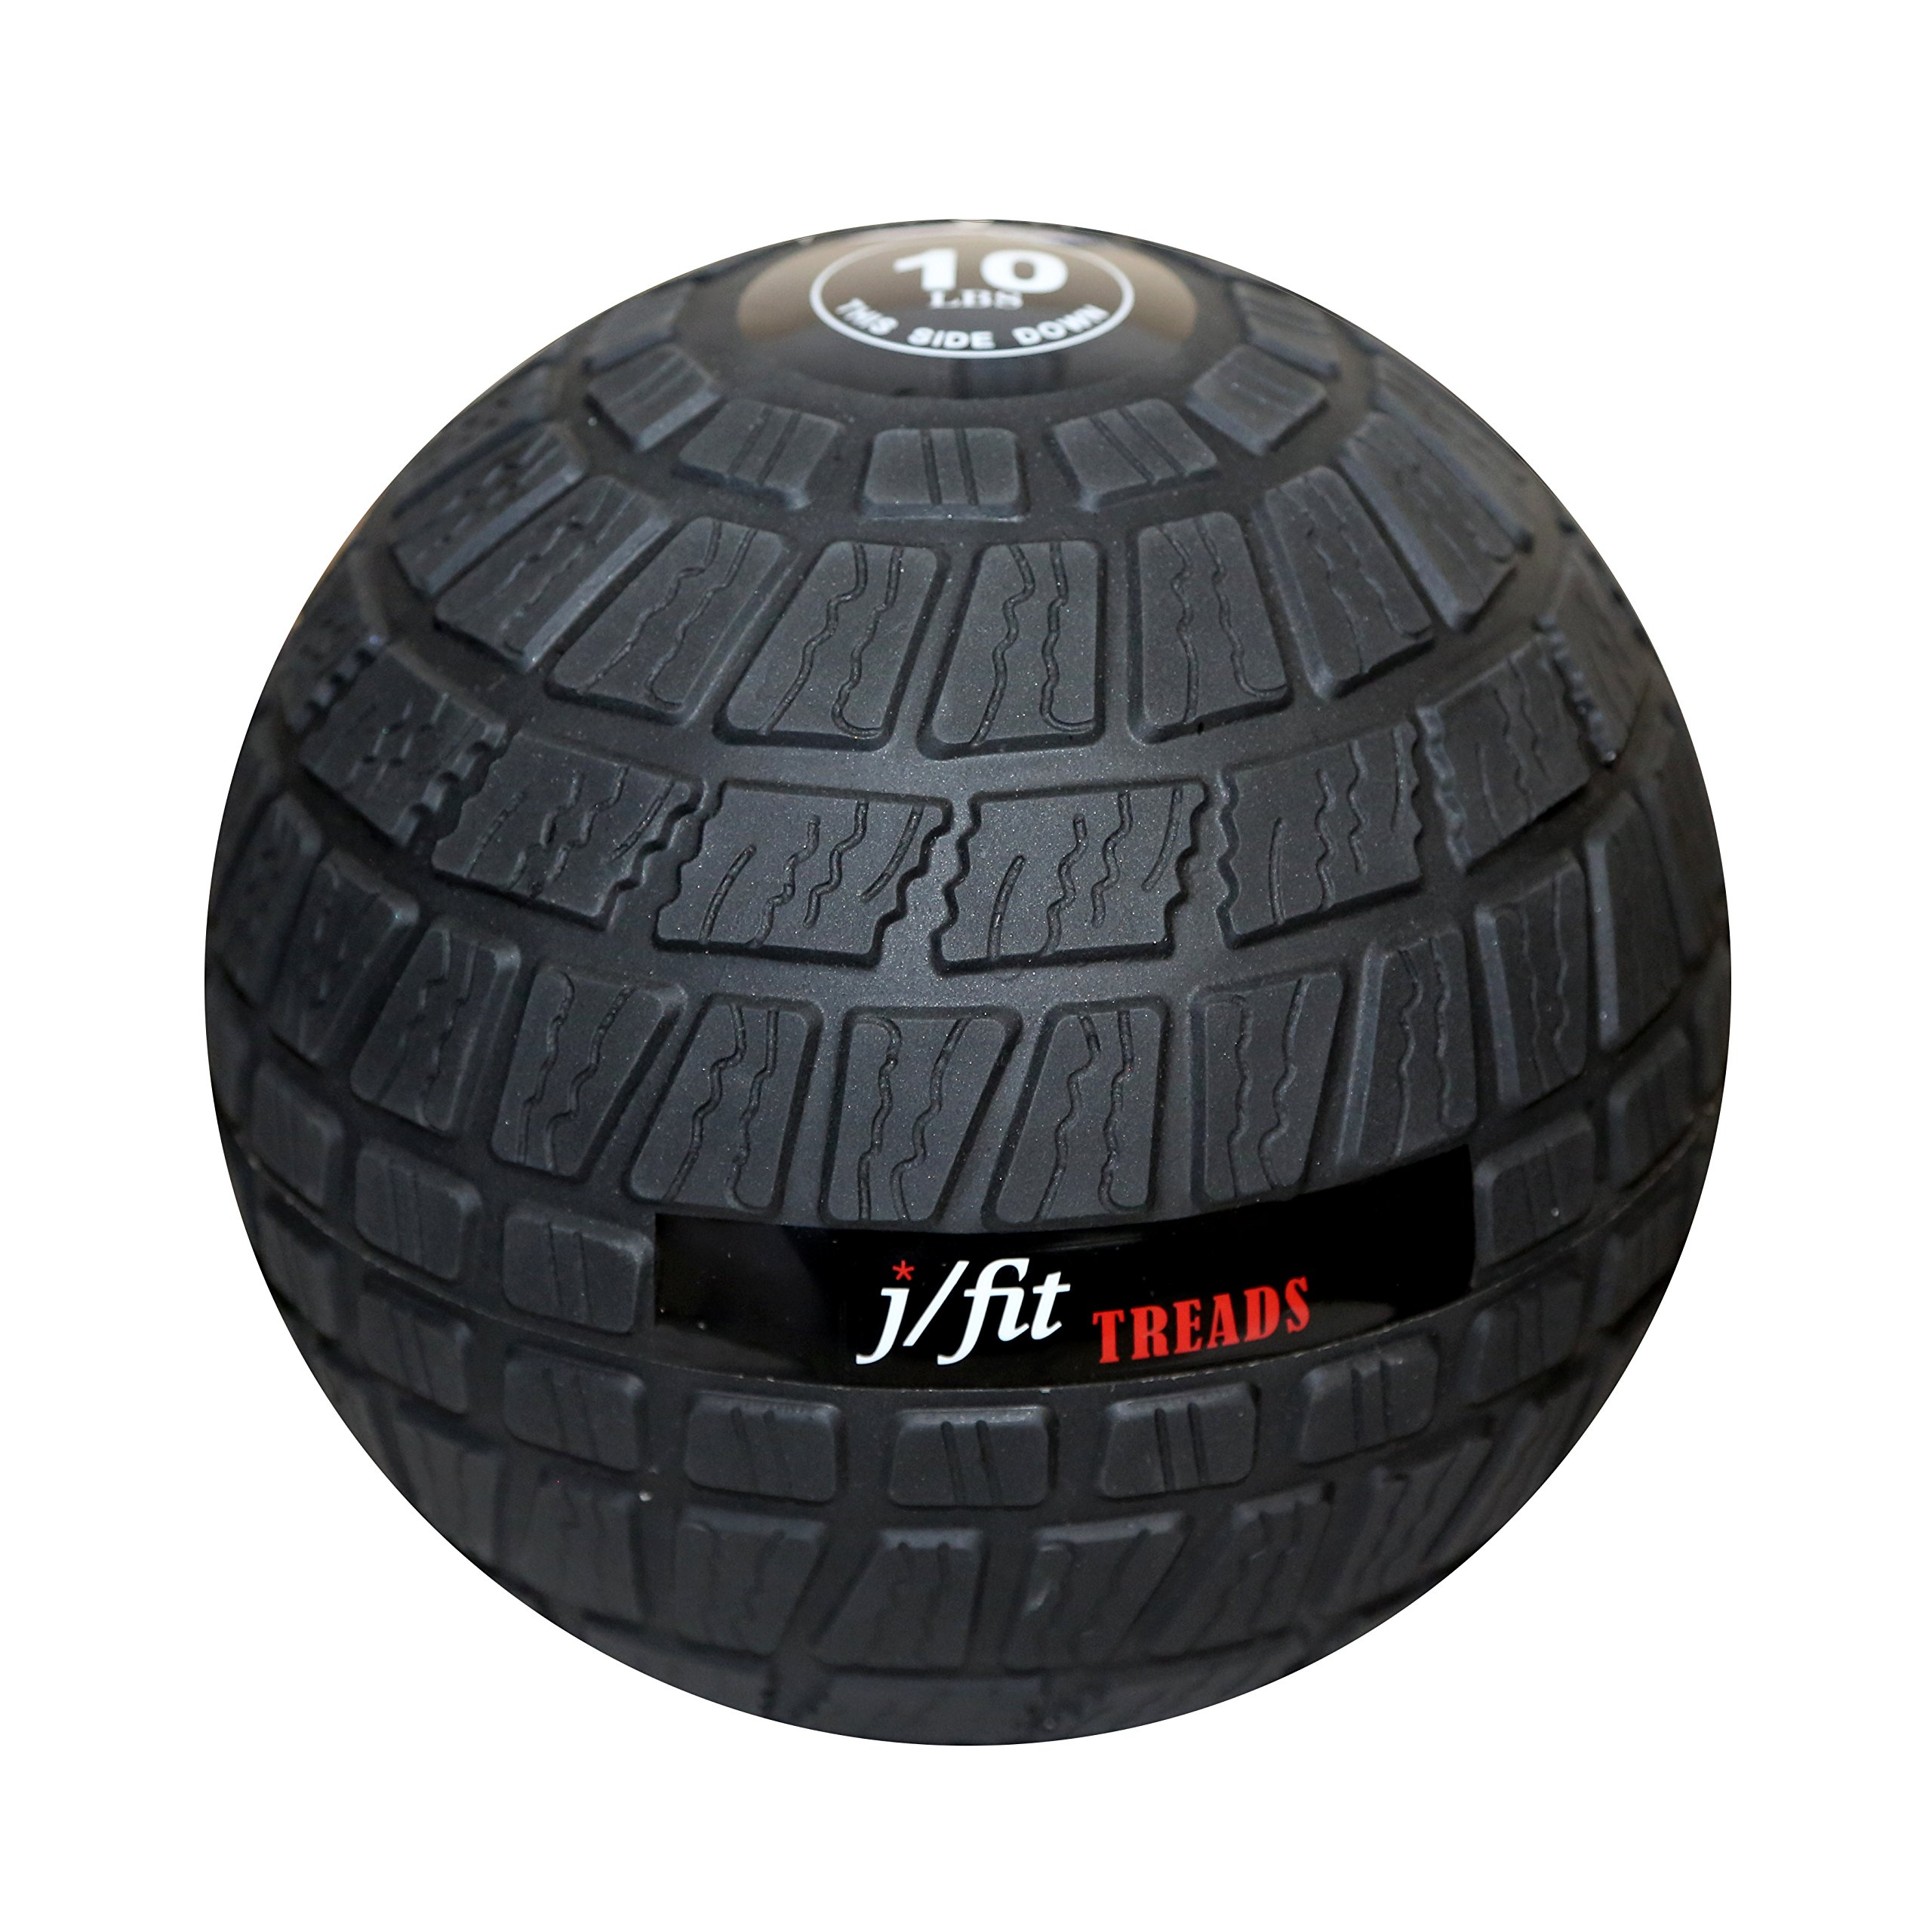 j/fit TREADS Dead Weight Slam Ball with Easy-Grip Textured Surface, 45 lb by j/fit (Image #4)